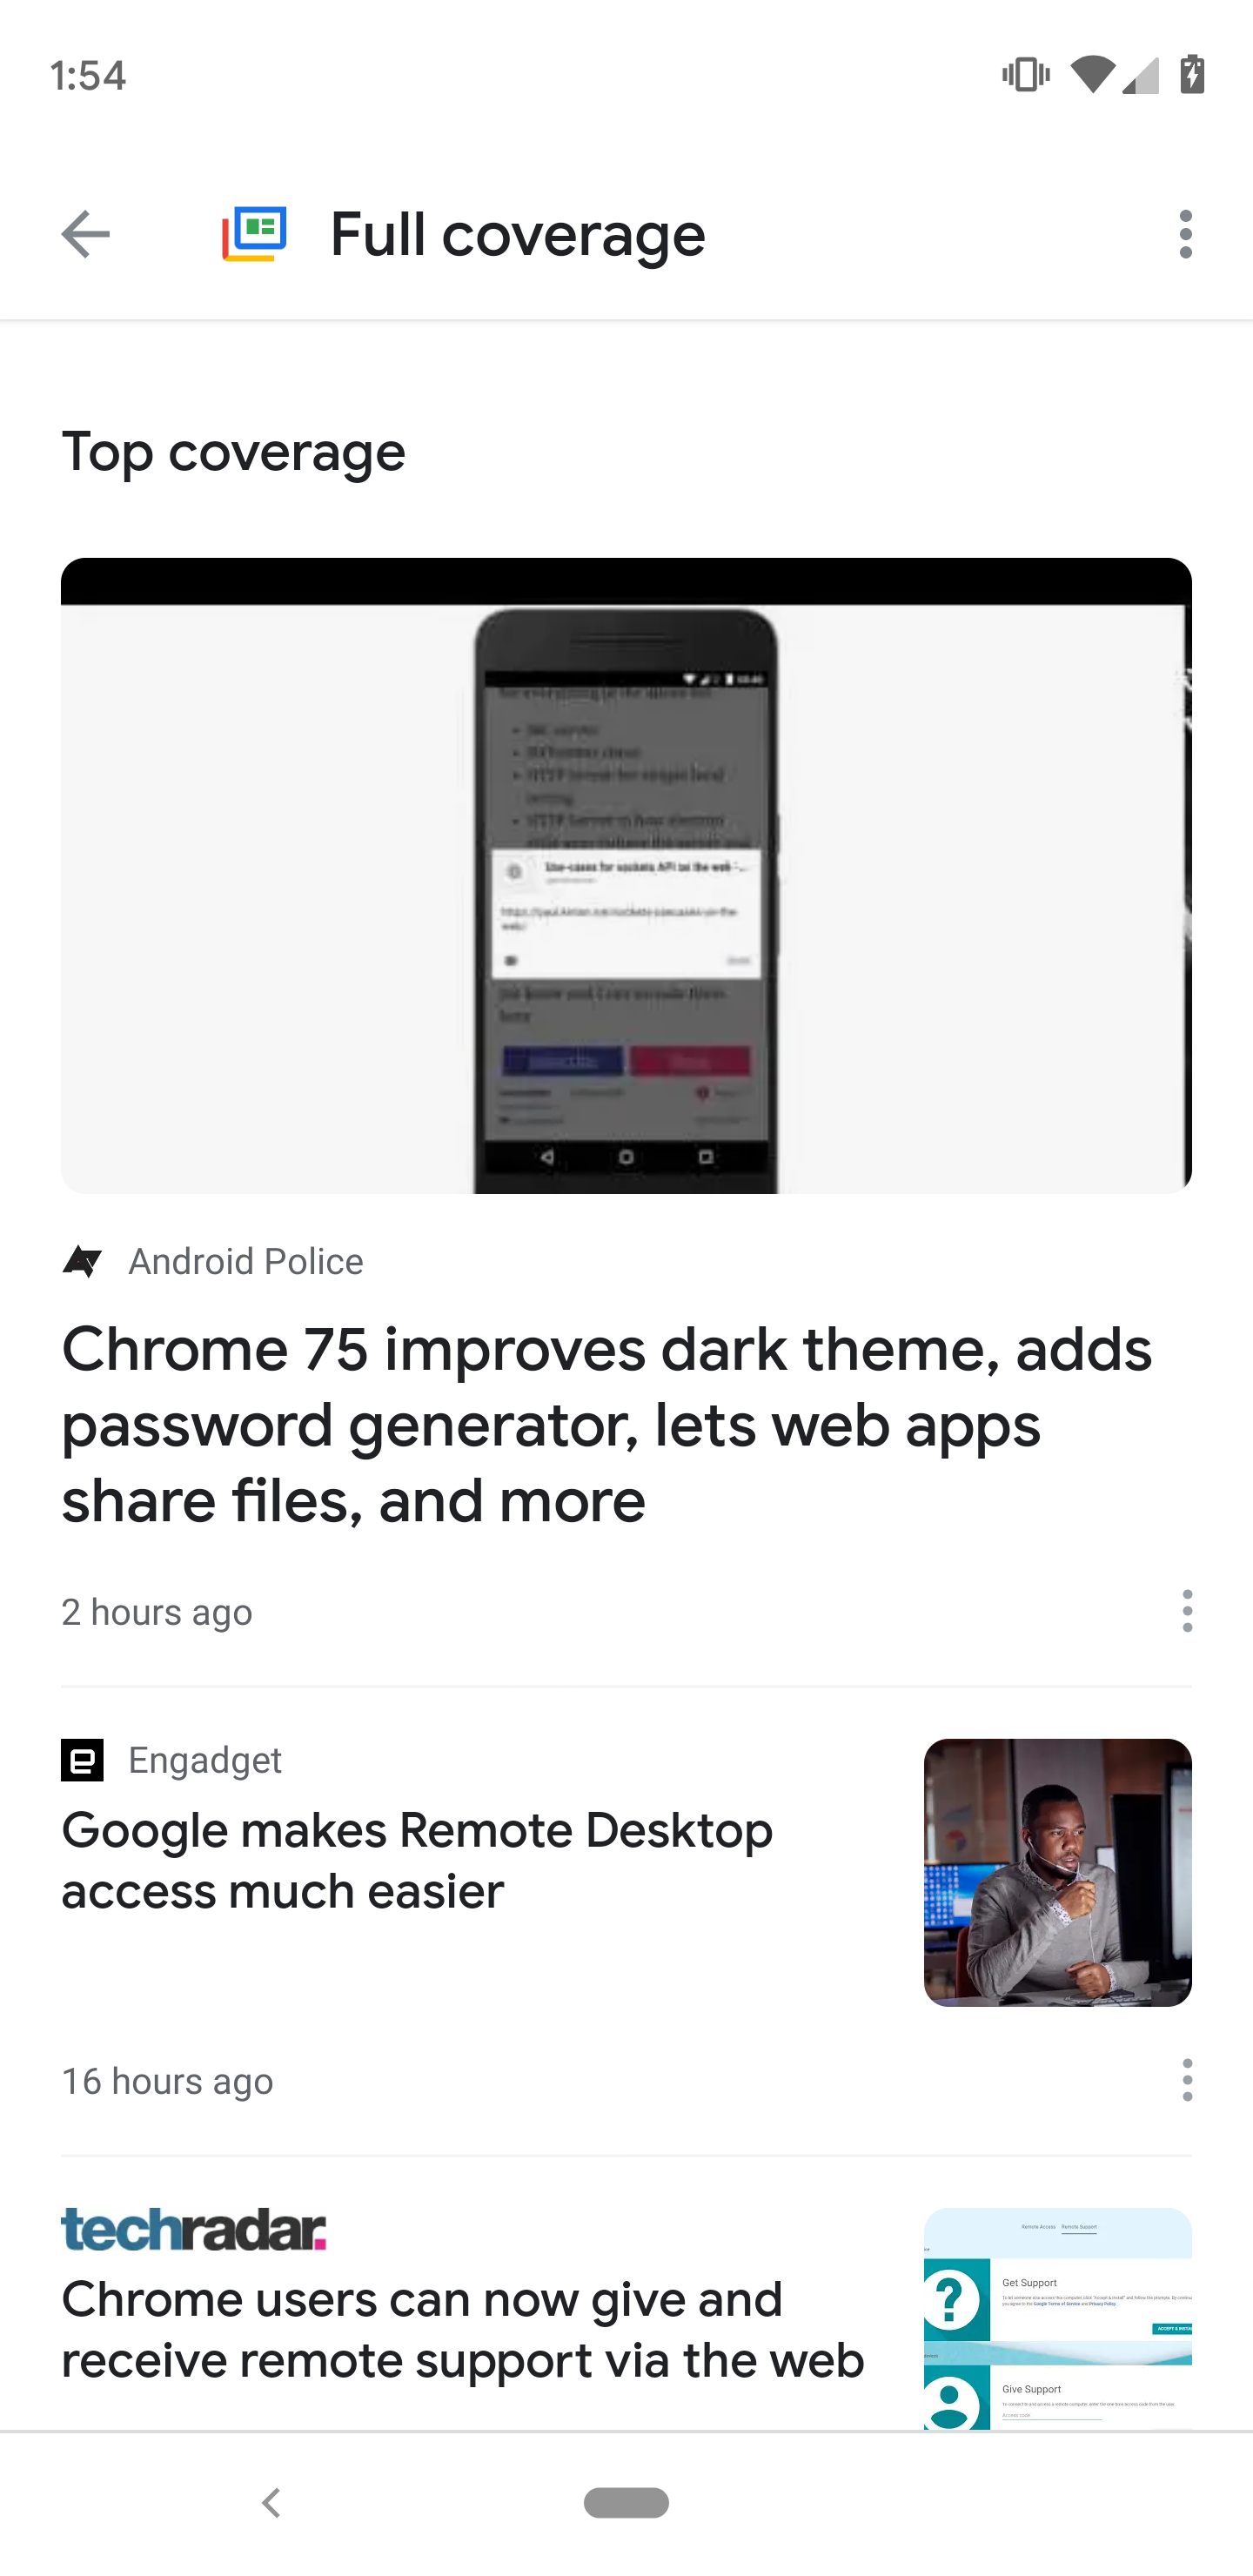 Google News v5 12 adds larger 'full coverage' button, moves